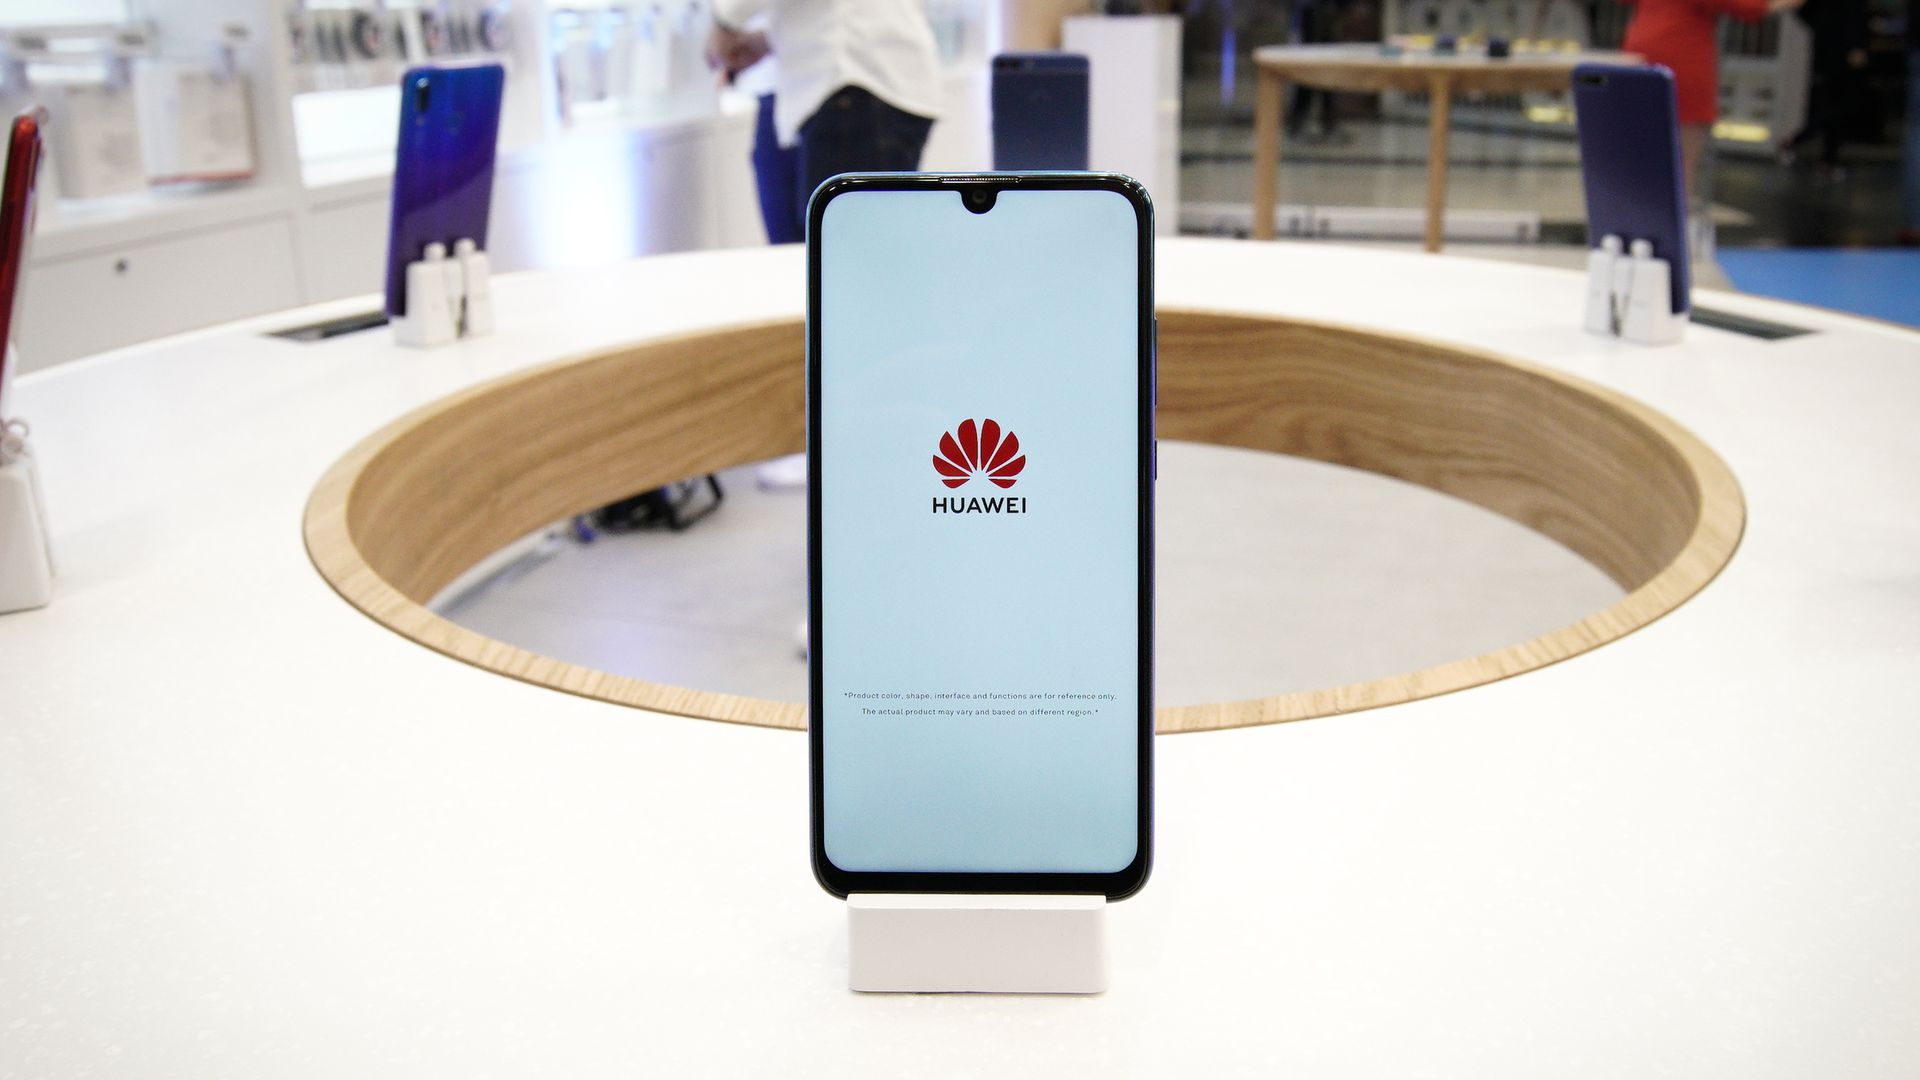 A Huawei mobile phone is seen on display at the flagship store in Warsaw, Poland